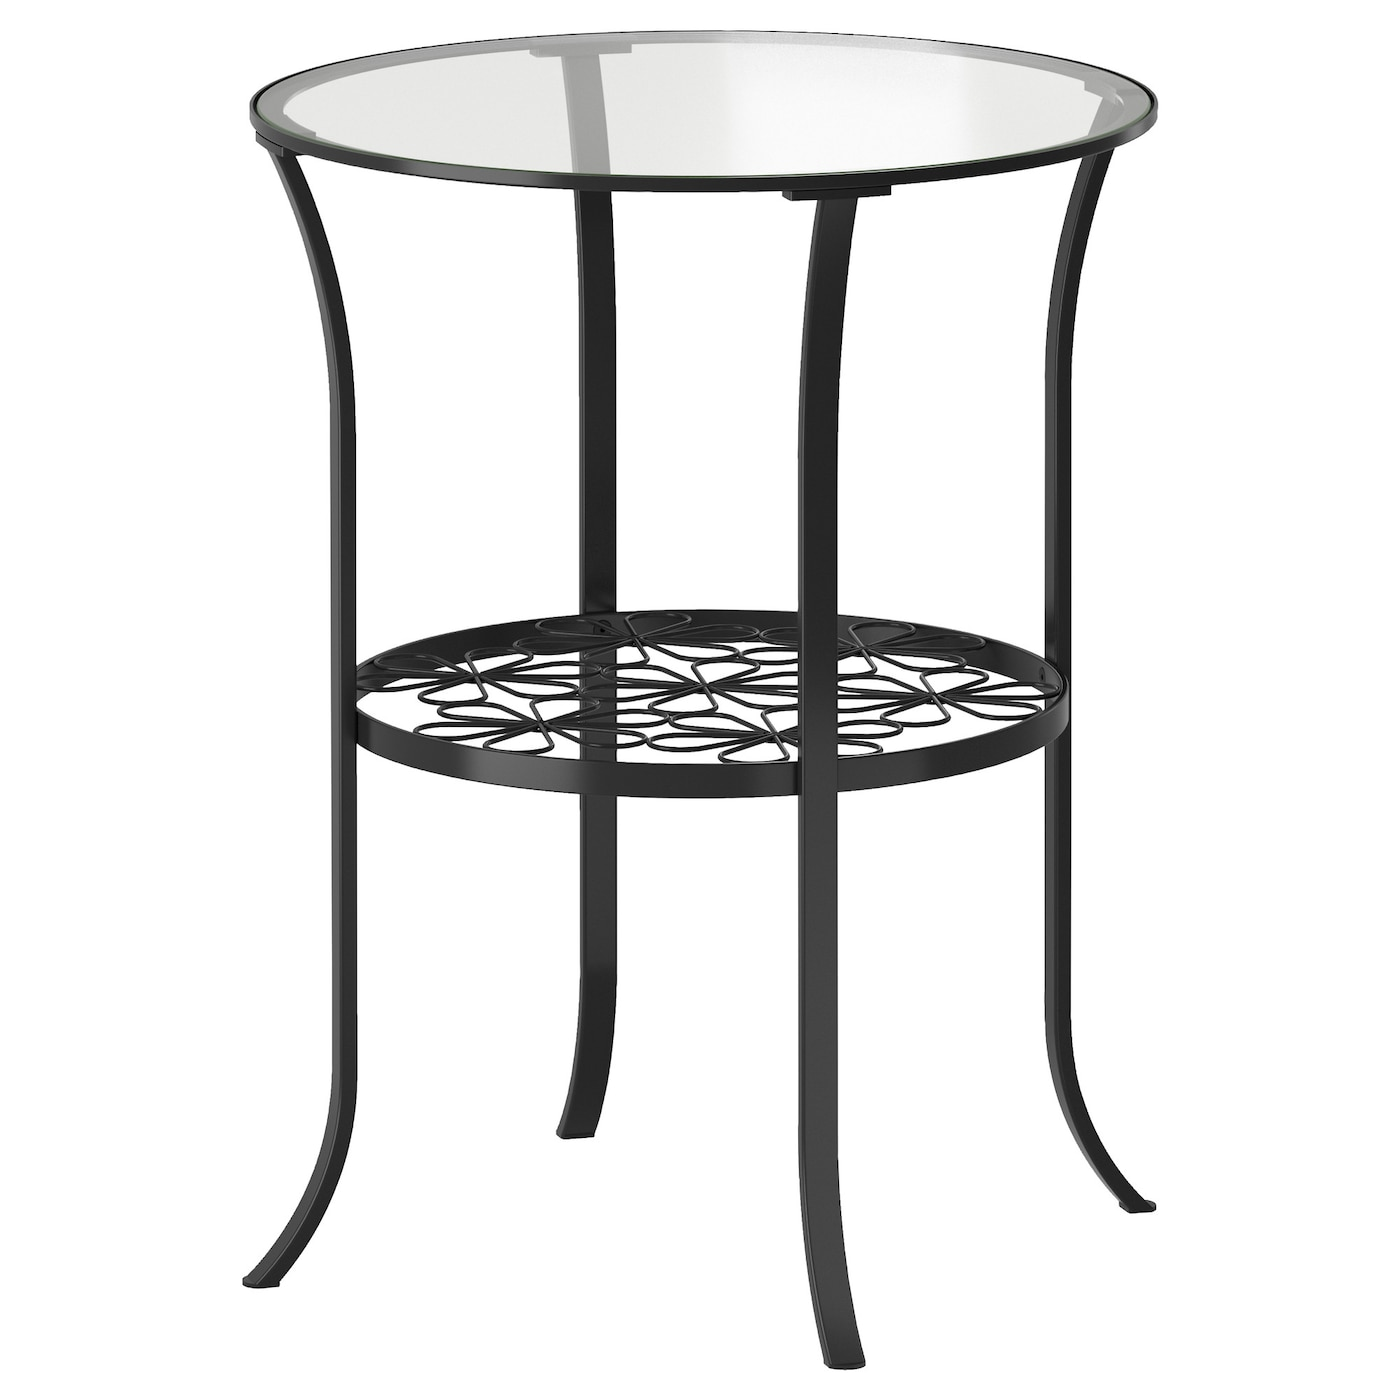 Klingsbo side table black clear glass 49x60 cm ikea for Ikea glass table tops